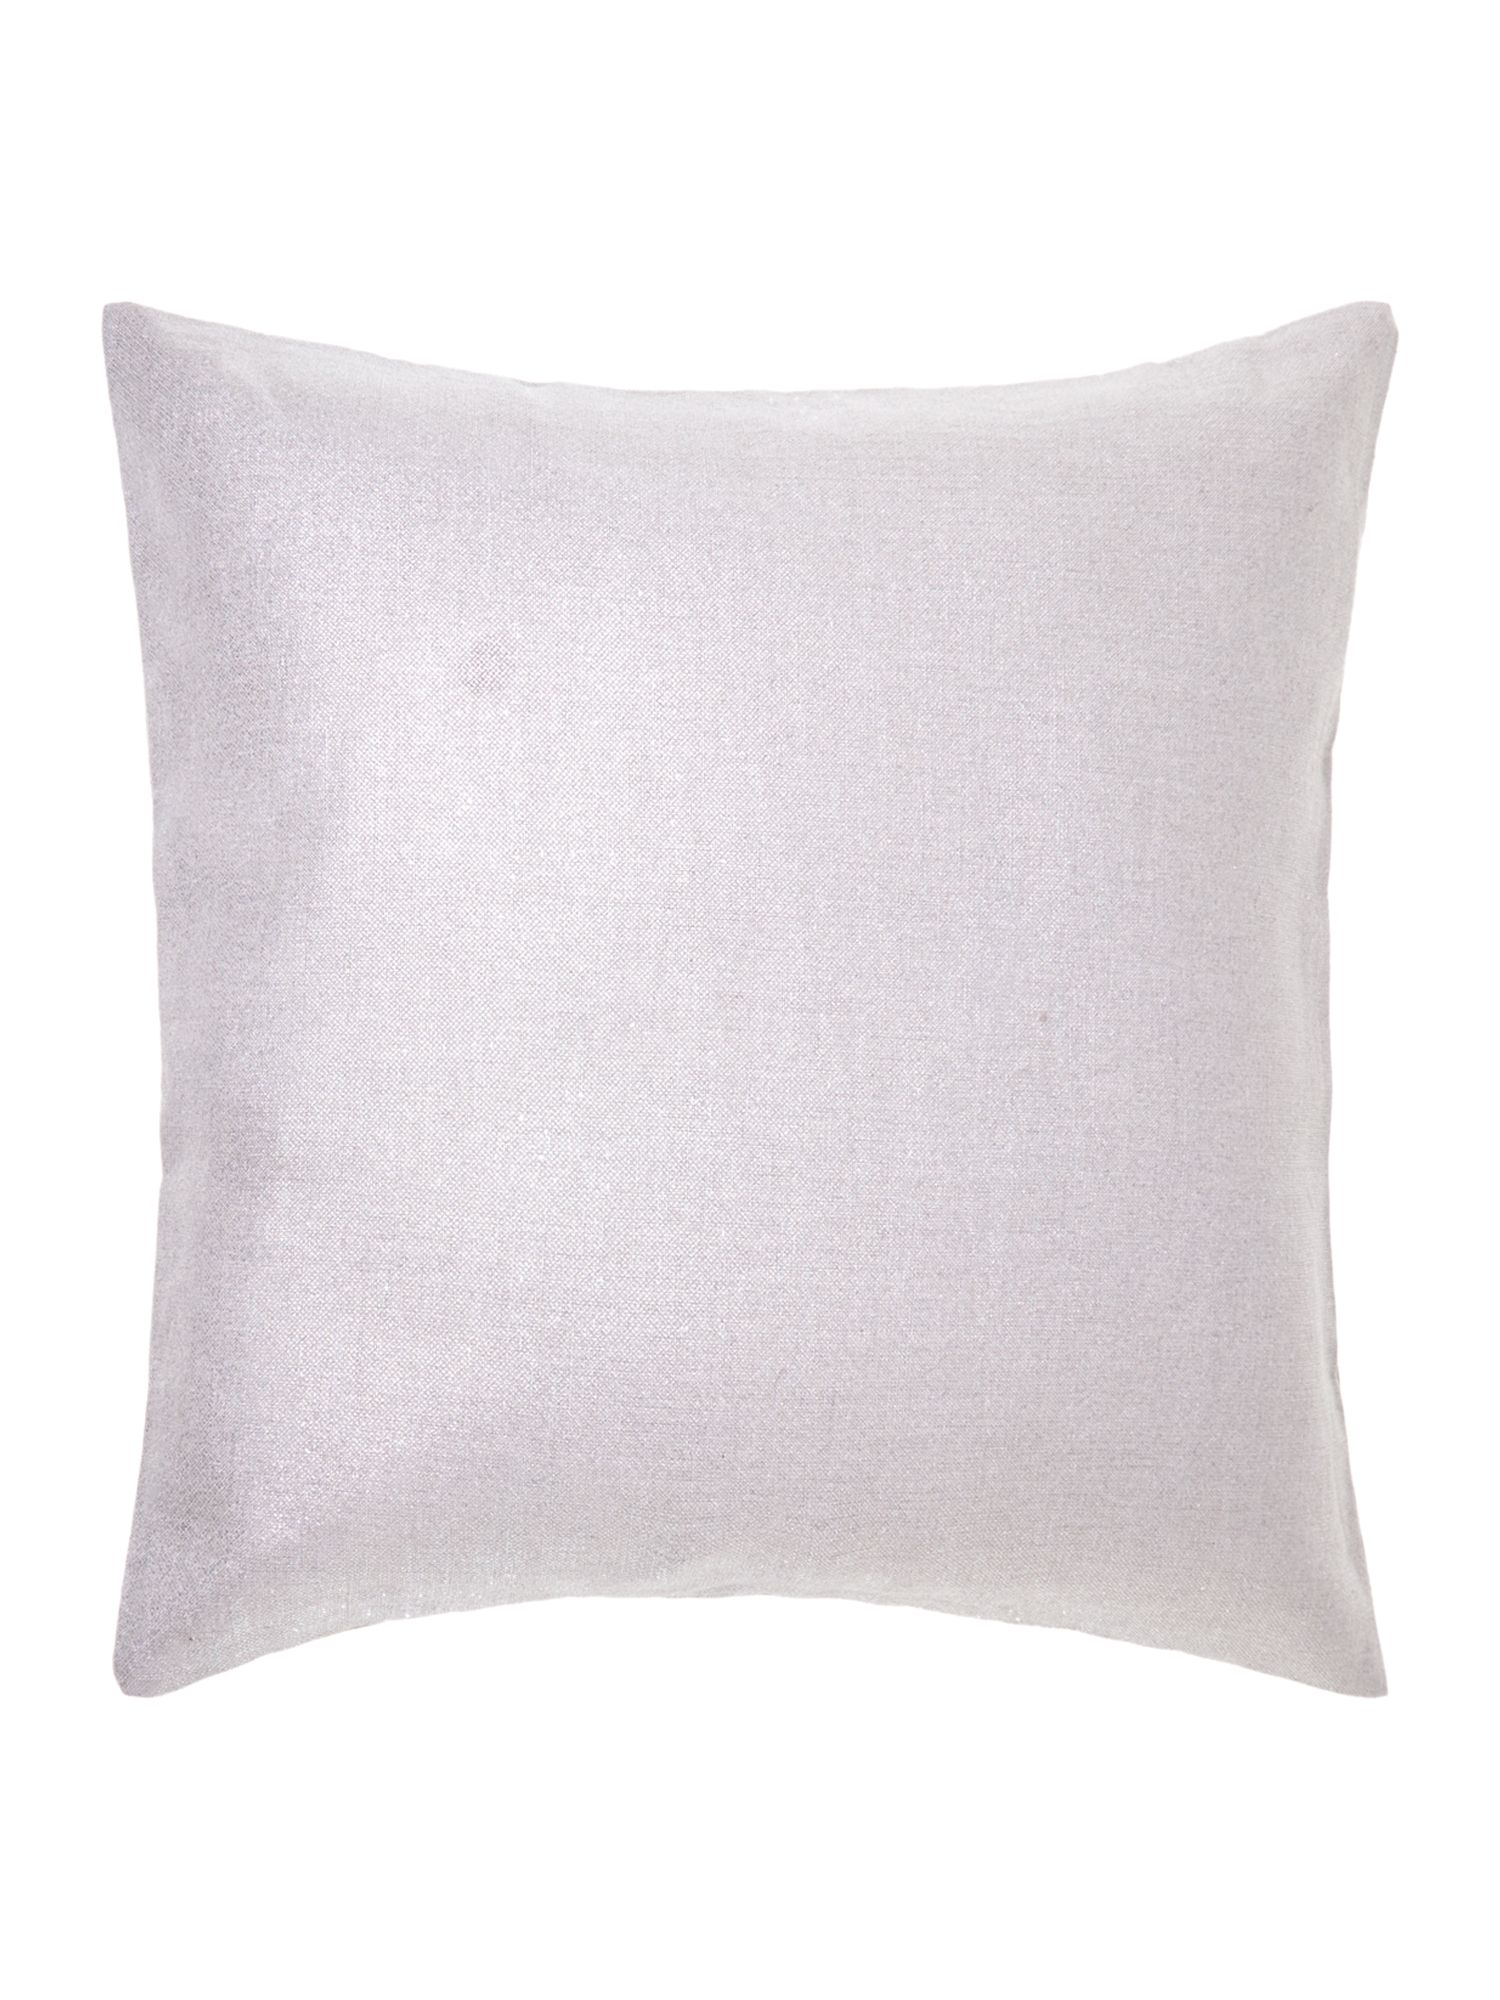 Silver effect linen cushion